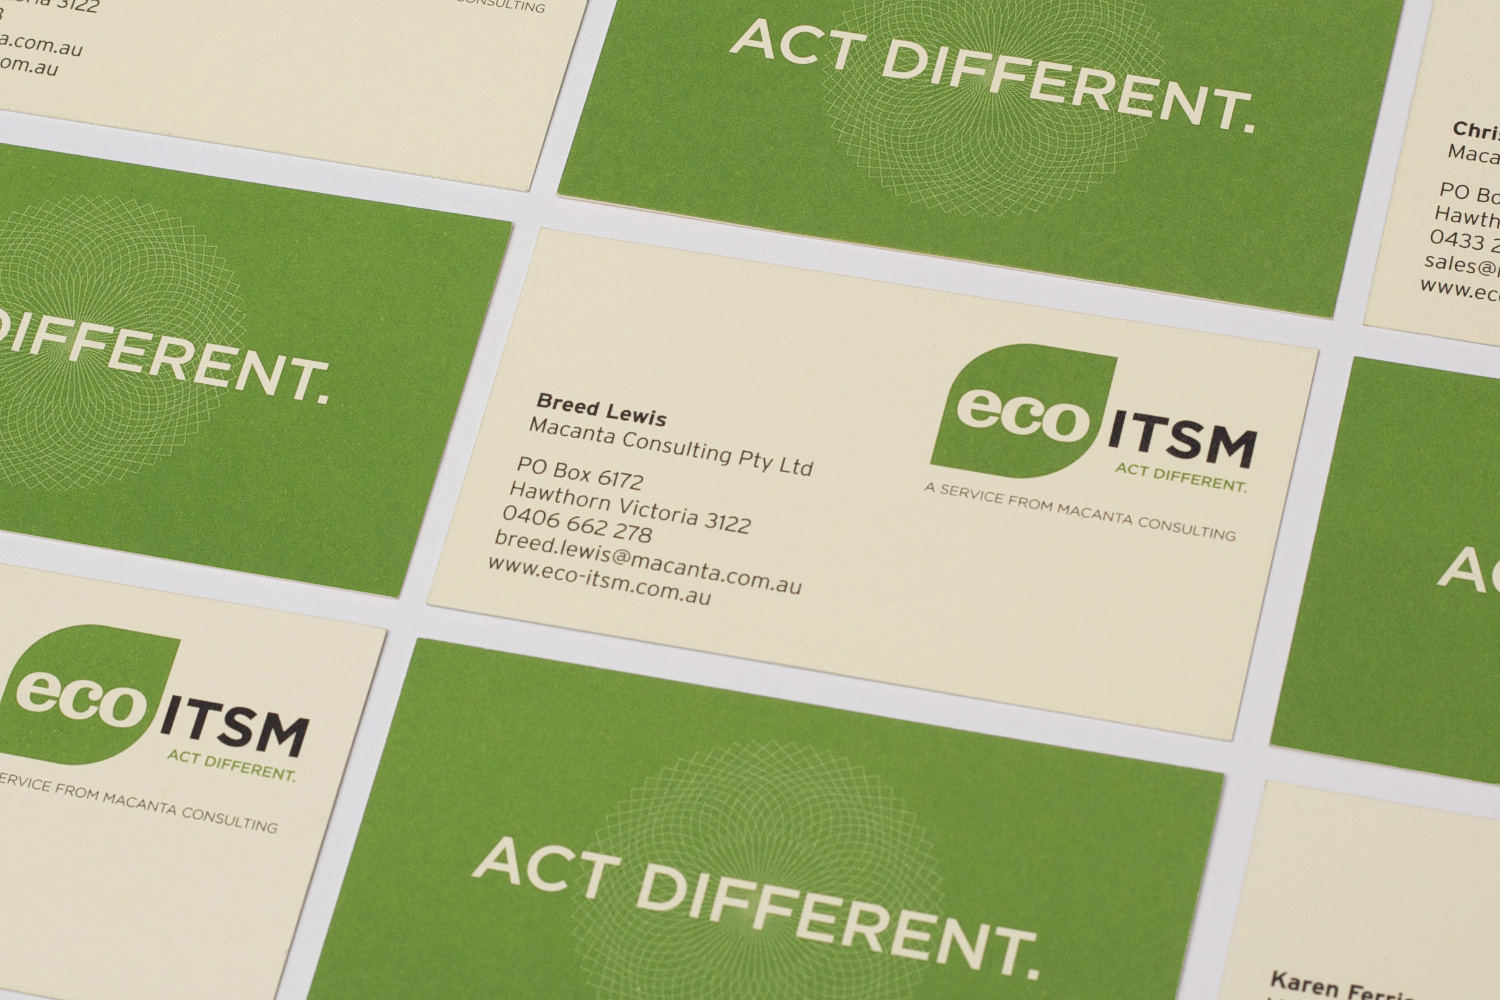 eco-ITSM-Business-Card-01.jpg